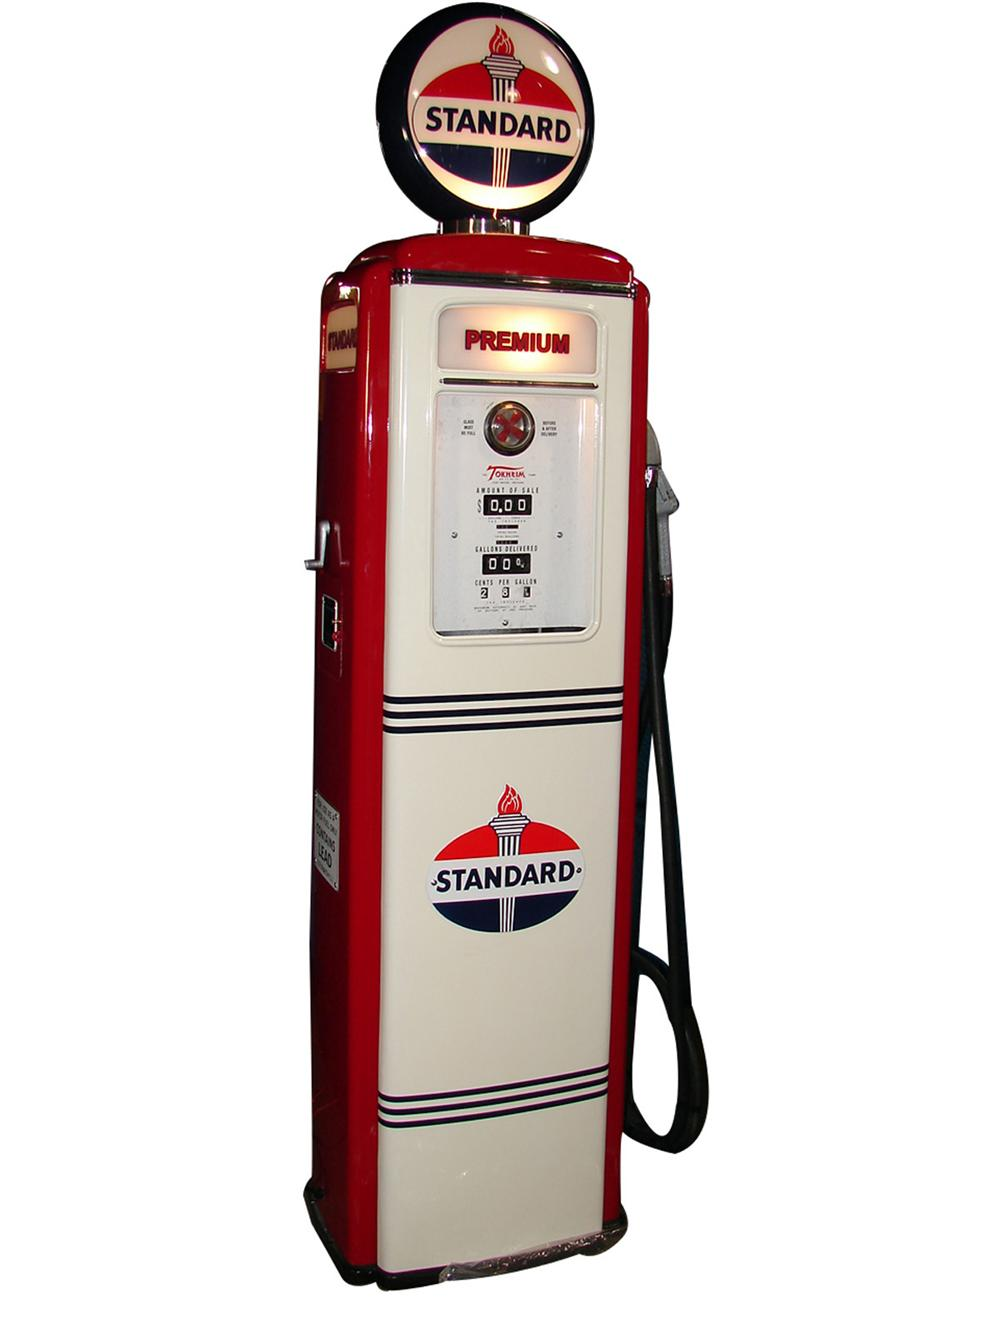 Perfectly restored 1940s-50s Standard Oil Tokheim 39 service station gas pump. - Front 3/4 - 97972